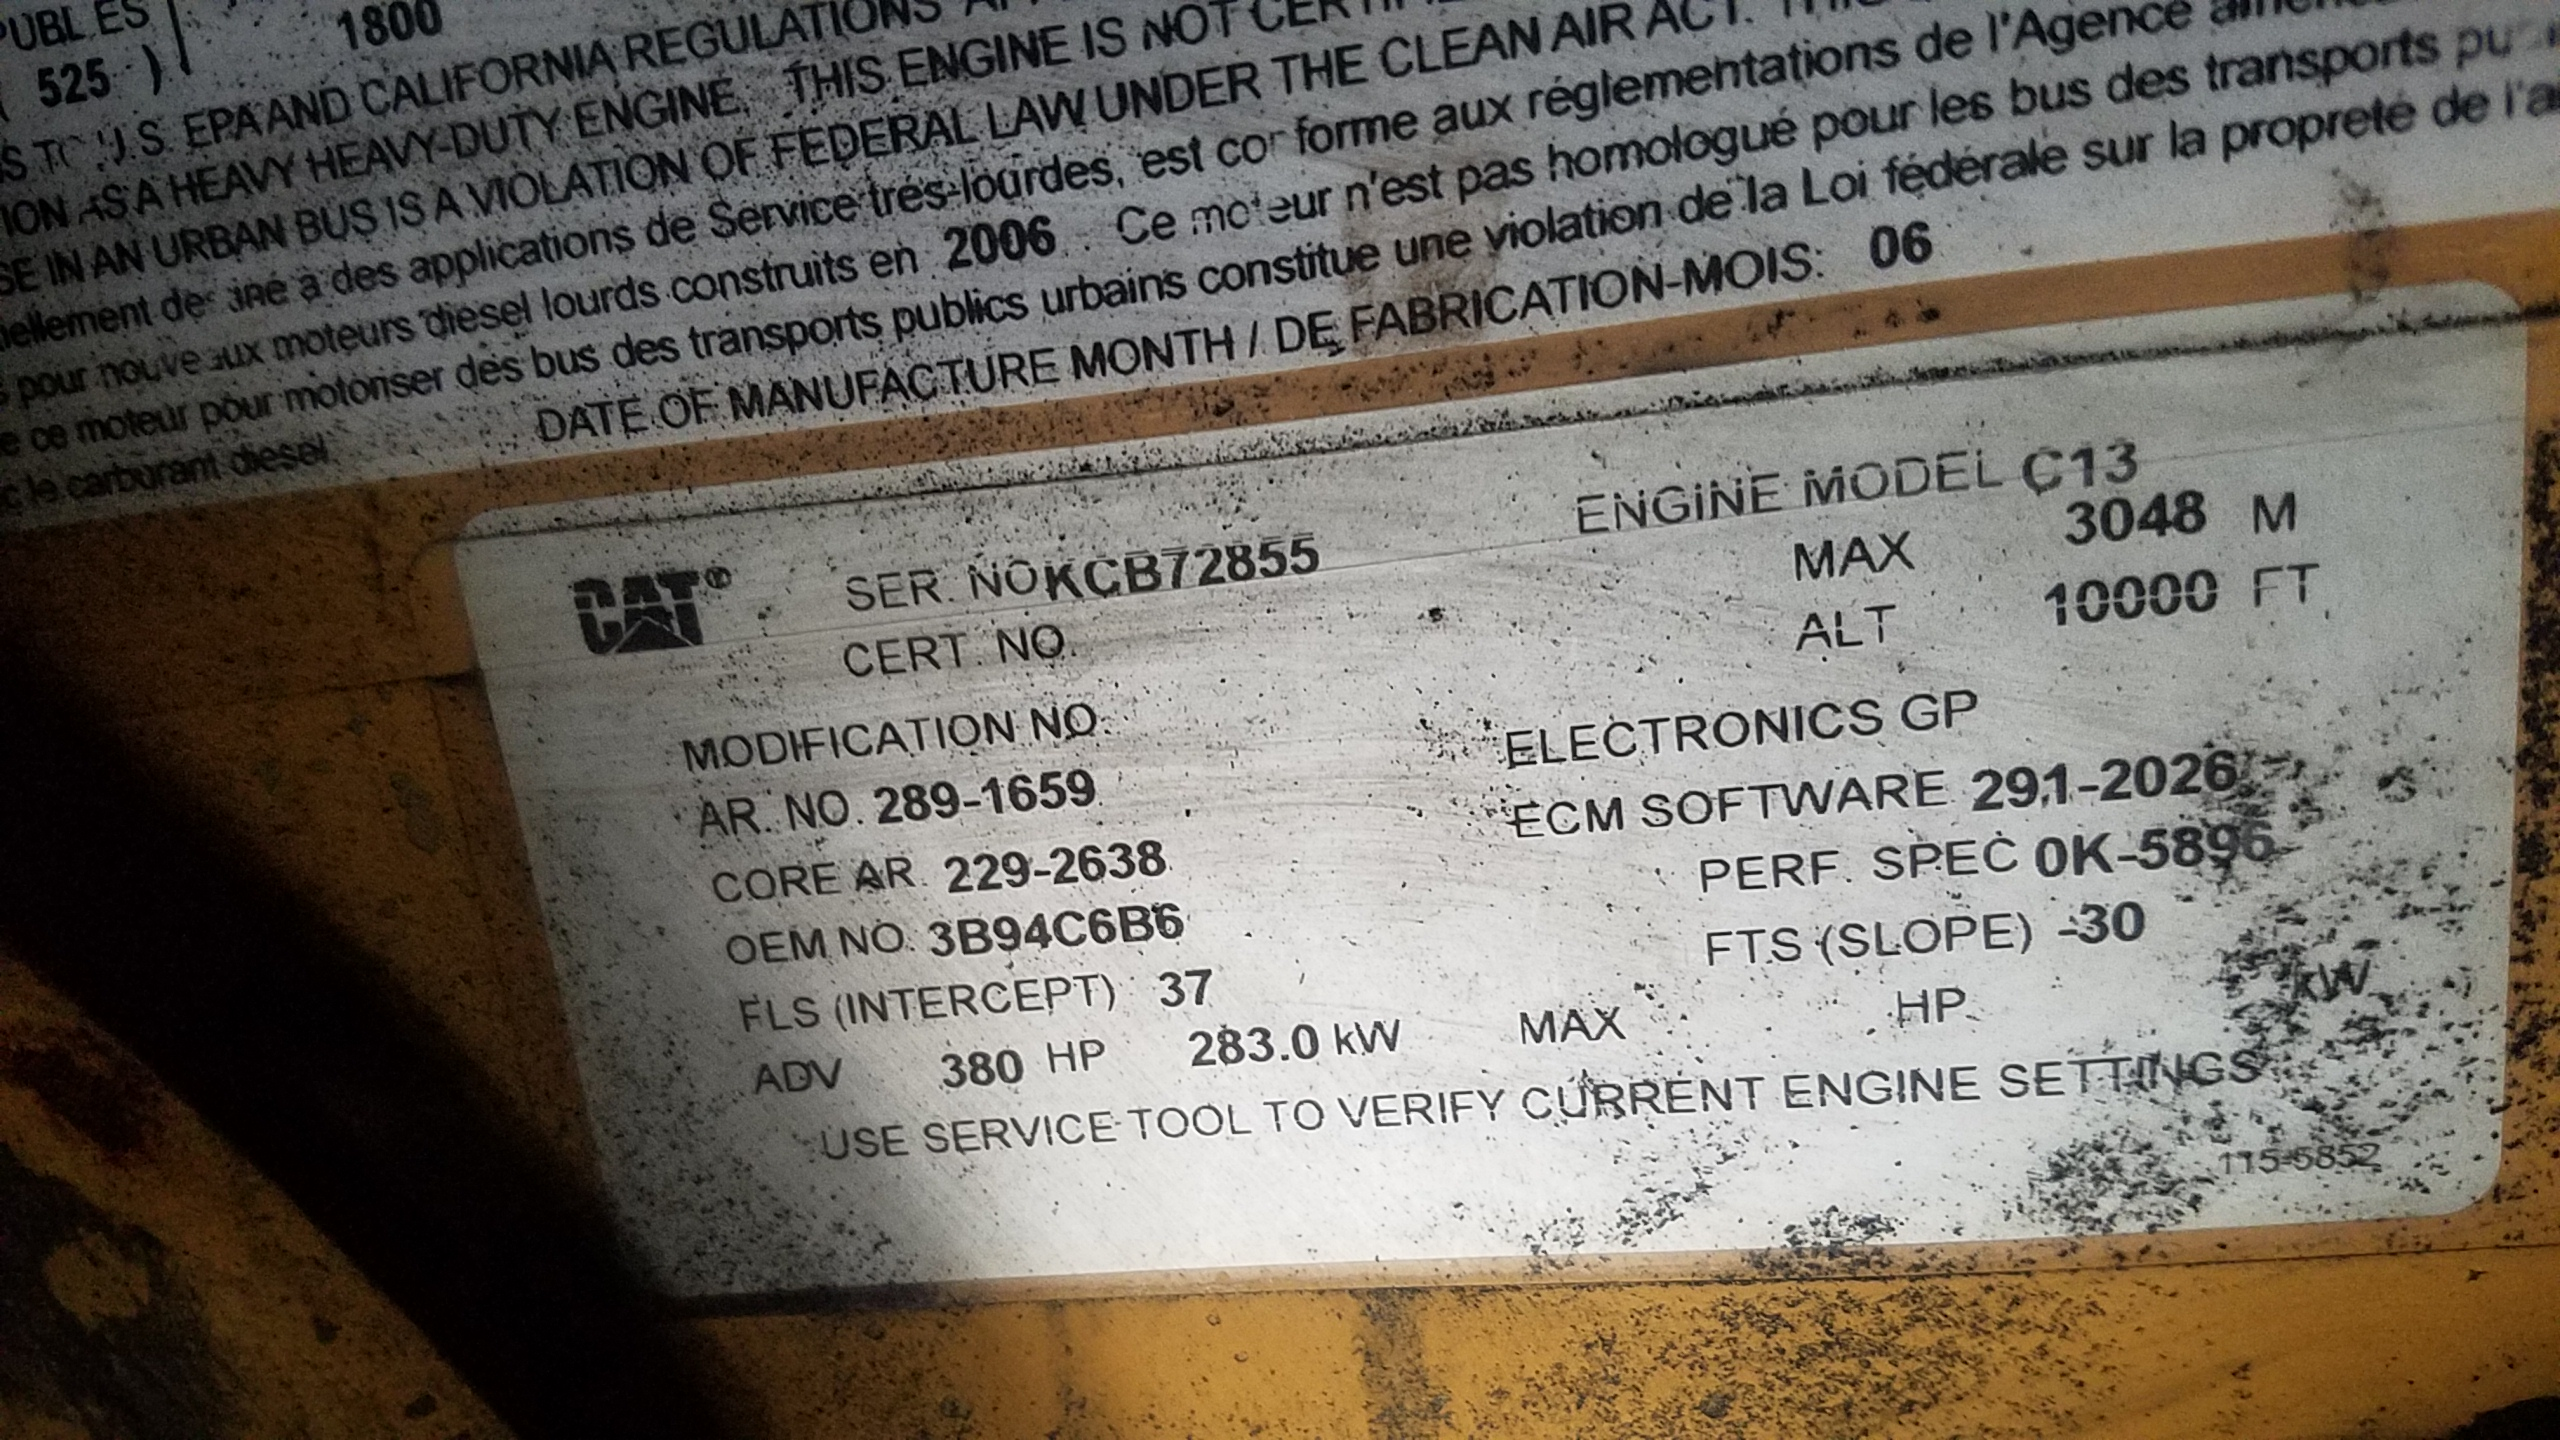 2005 international 7600 c13 engine  It has some codes for data link